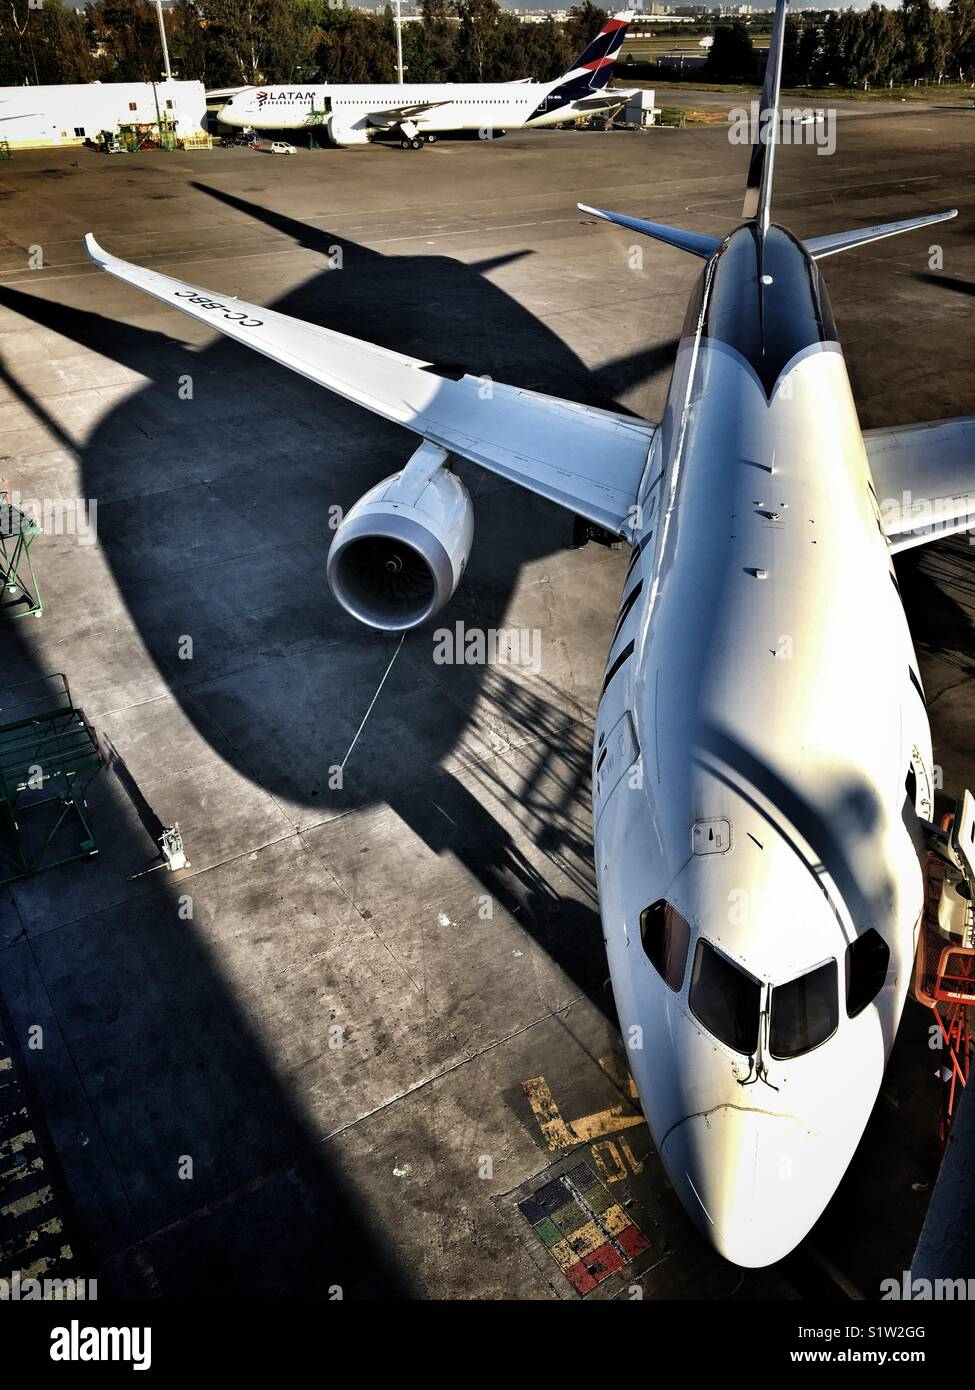 LATAM airport and its chubby shadow in the morning sun at Santiago de Chile airport - Stock Image